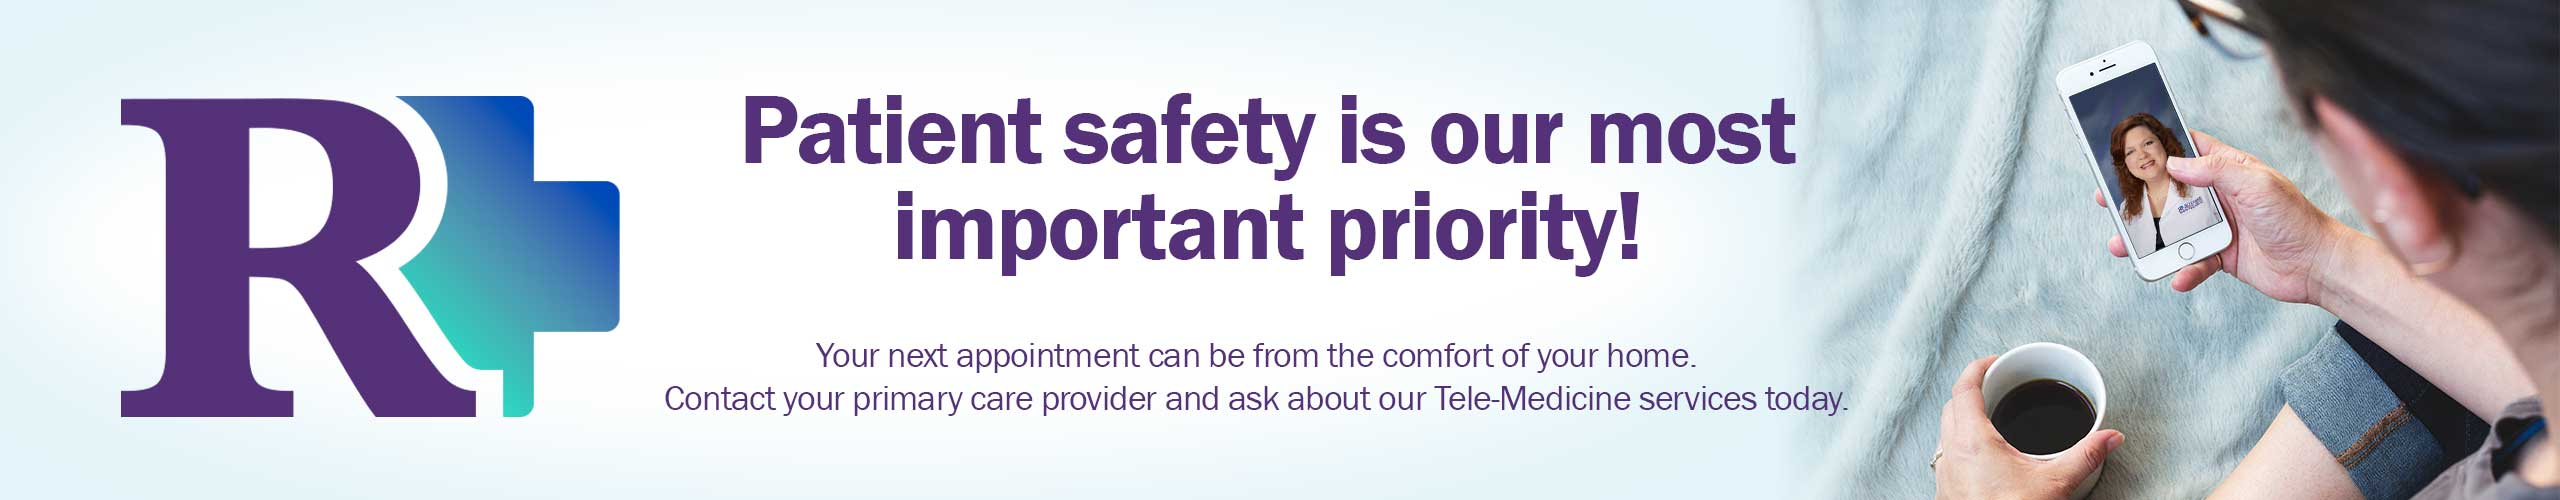 Patient safety is our most important priority.